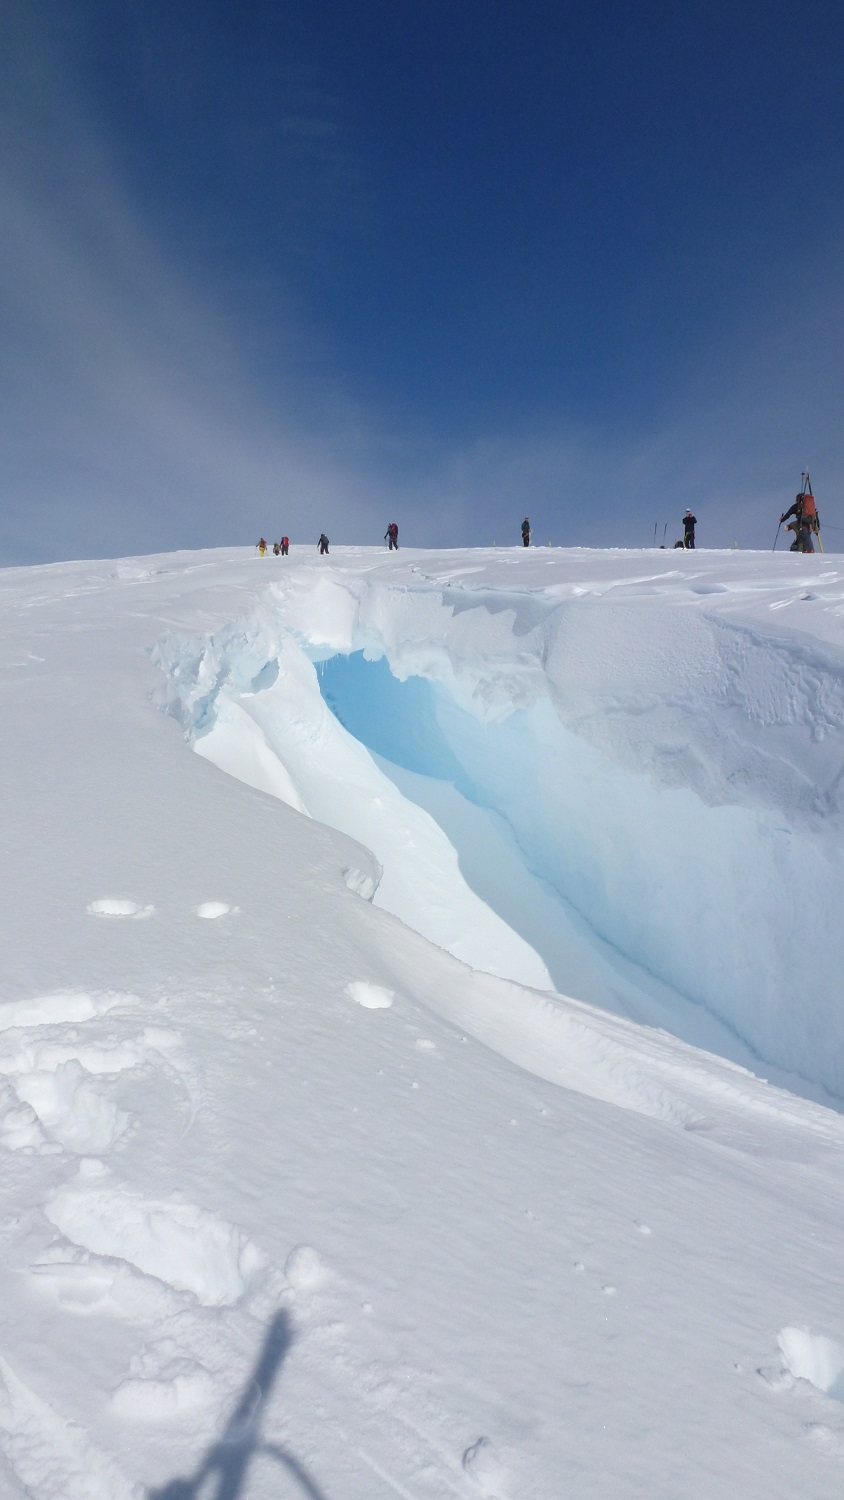 Roping Up To Travel Across Ice and Avoid Crevasses